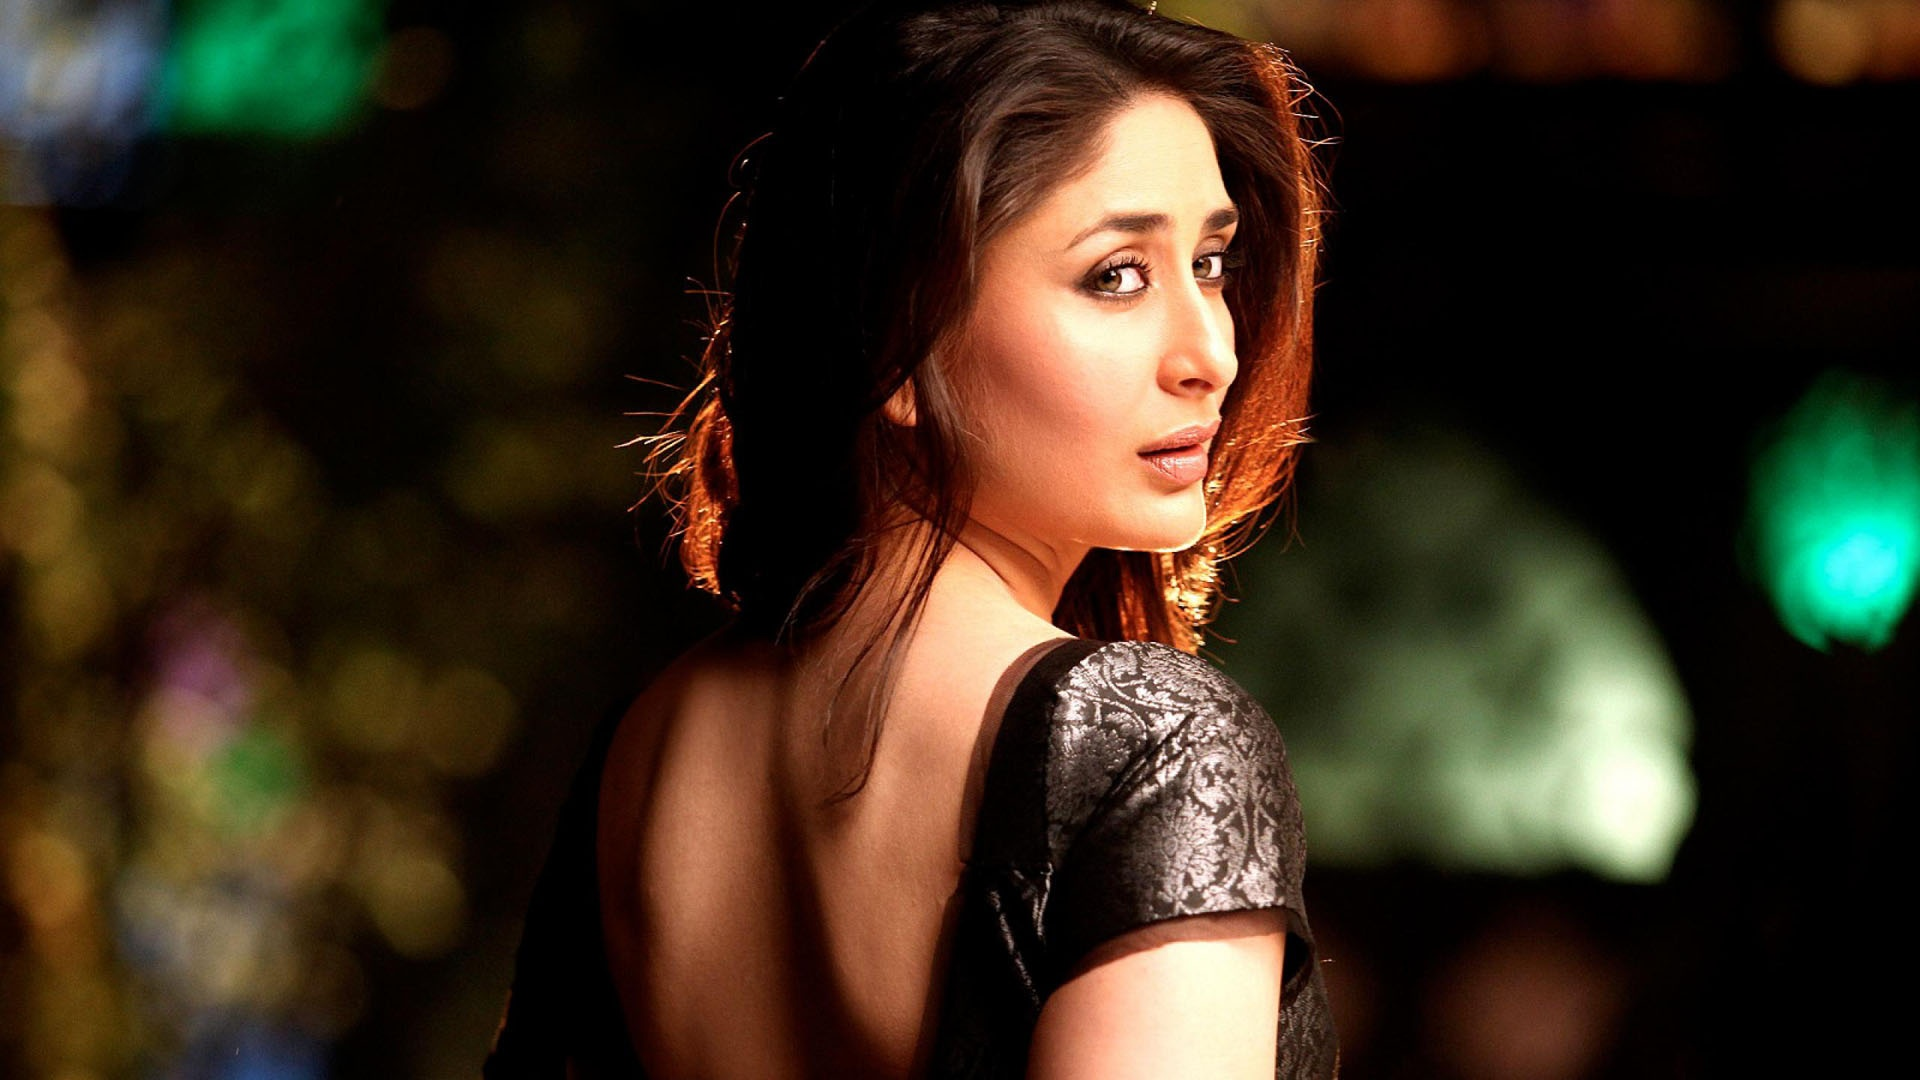 An Indian magazine has named Kareena Kapoor one of the most influential women in India.